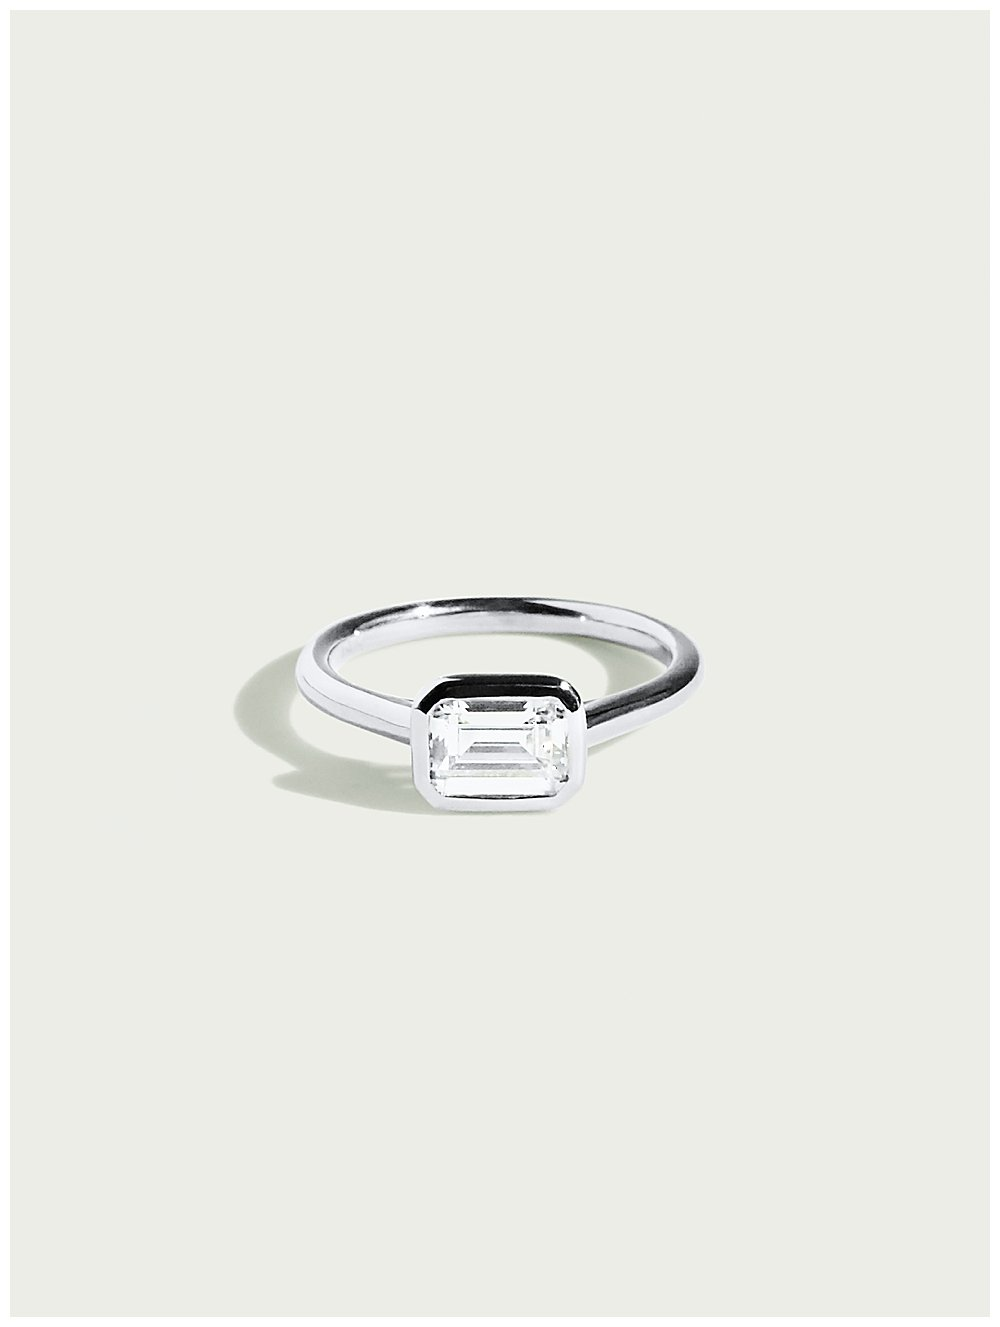 unisex-engagement-rings-6